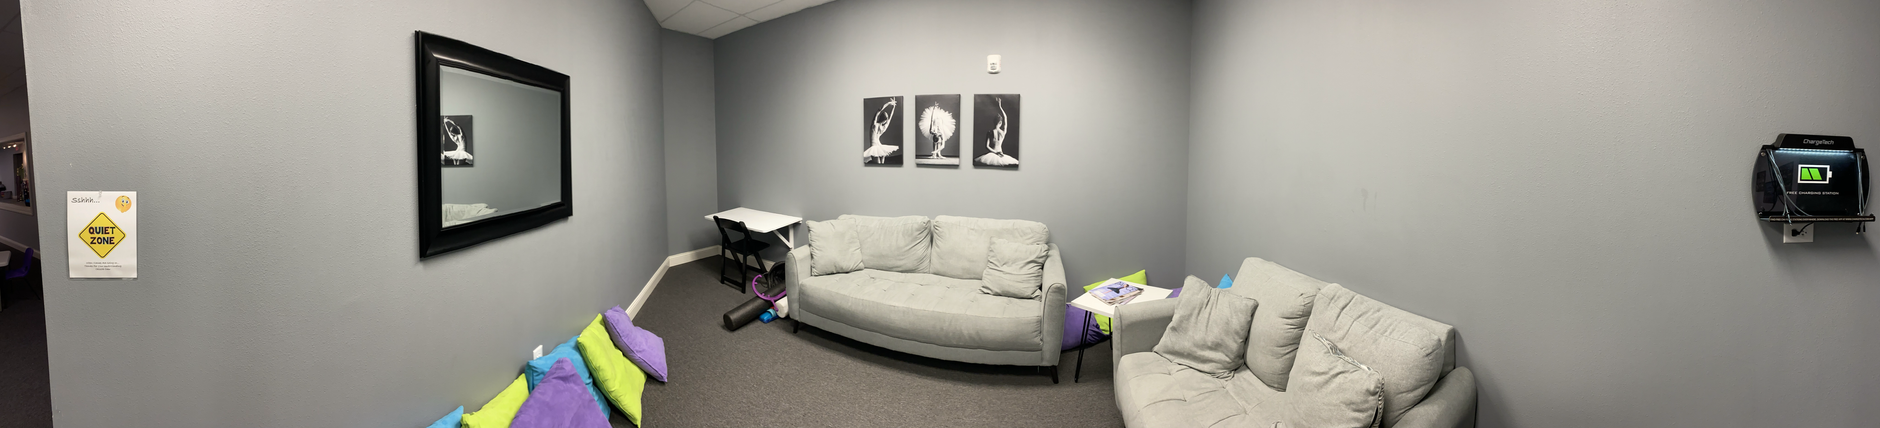 Student Lounge with Stretching/Strengthening Equipment and Charging Station